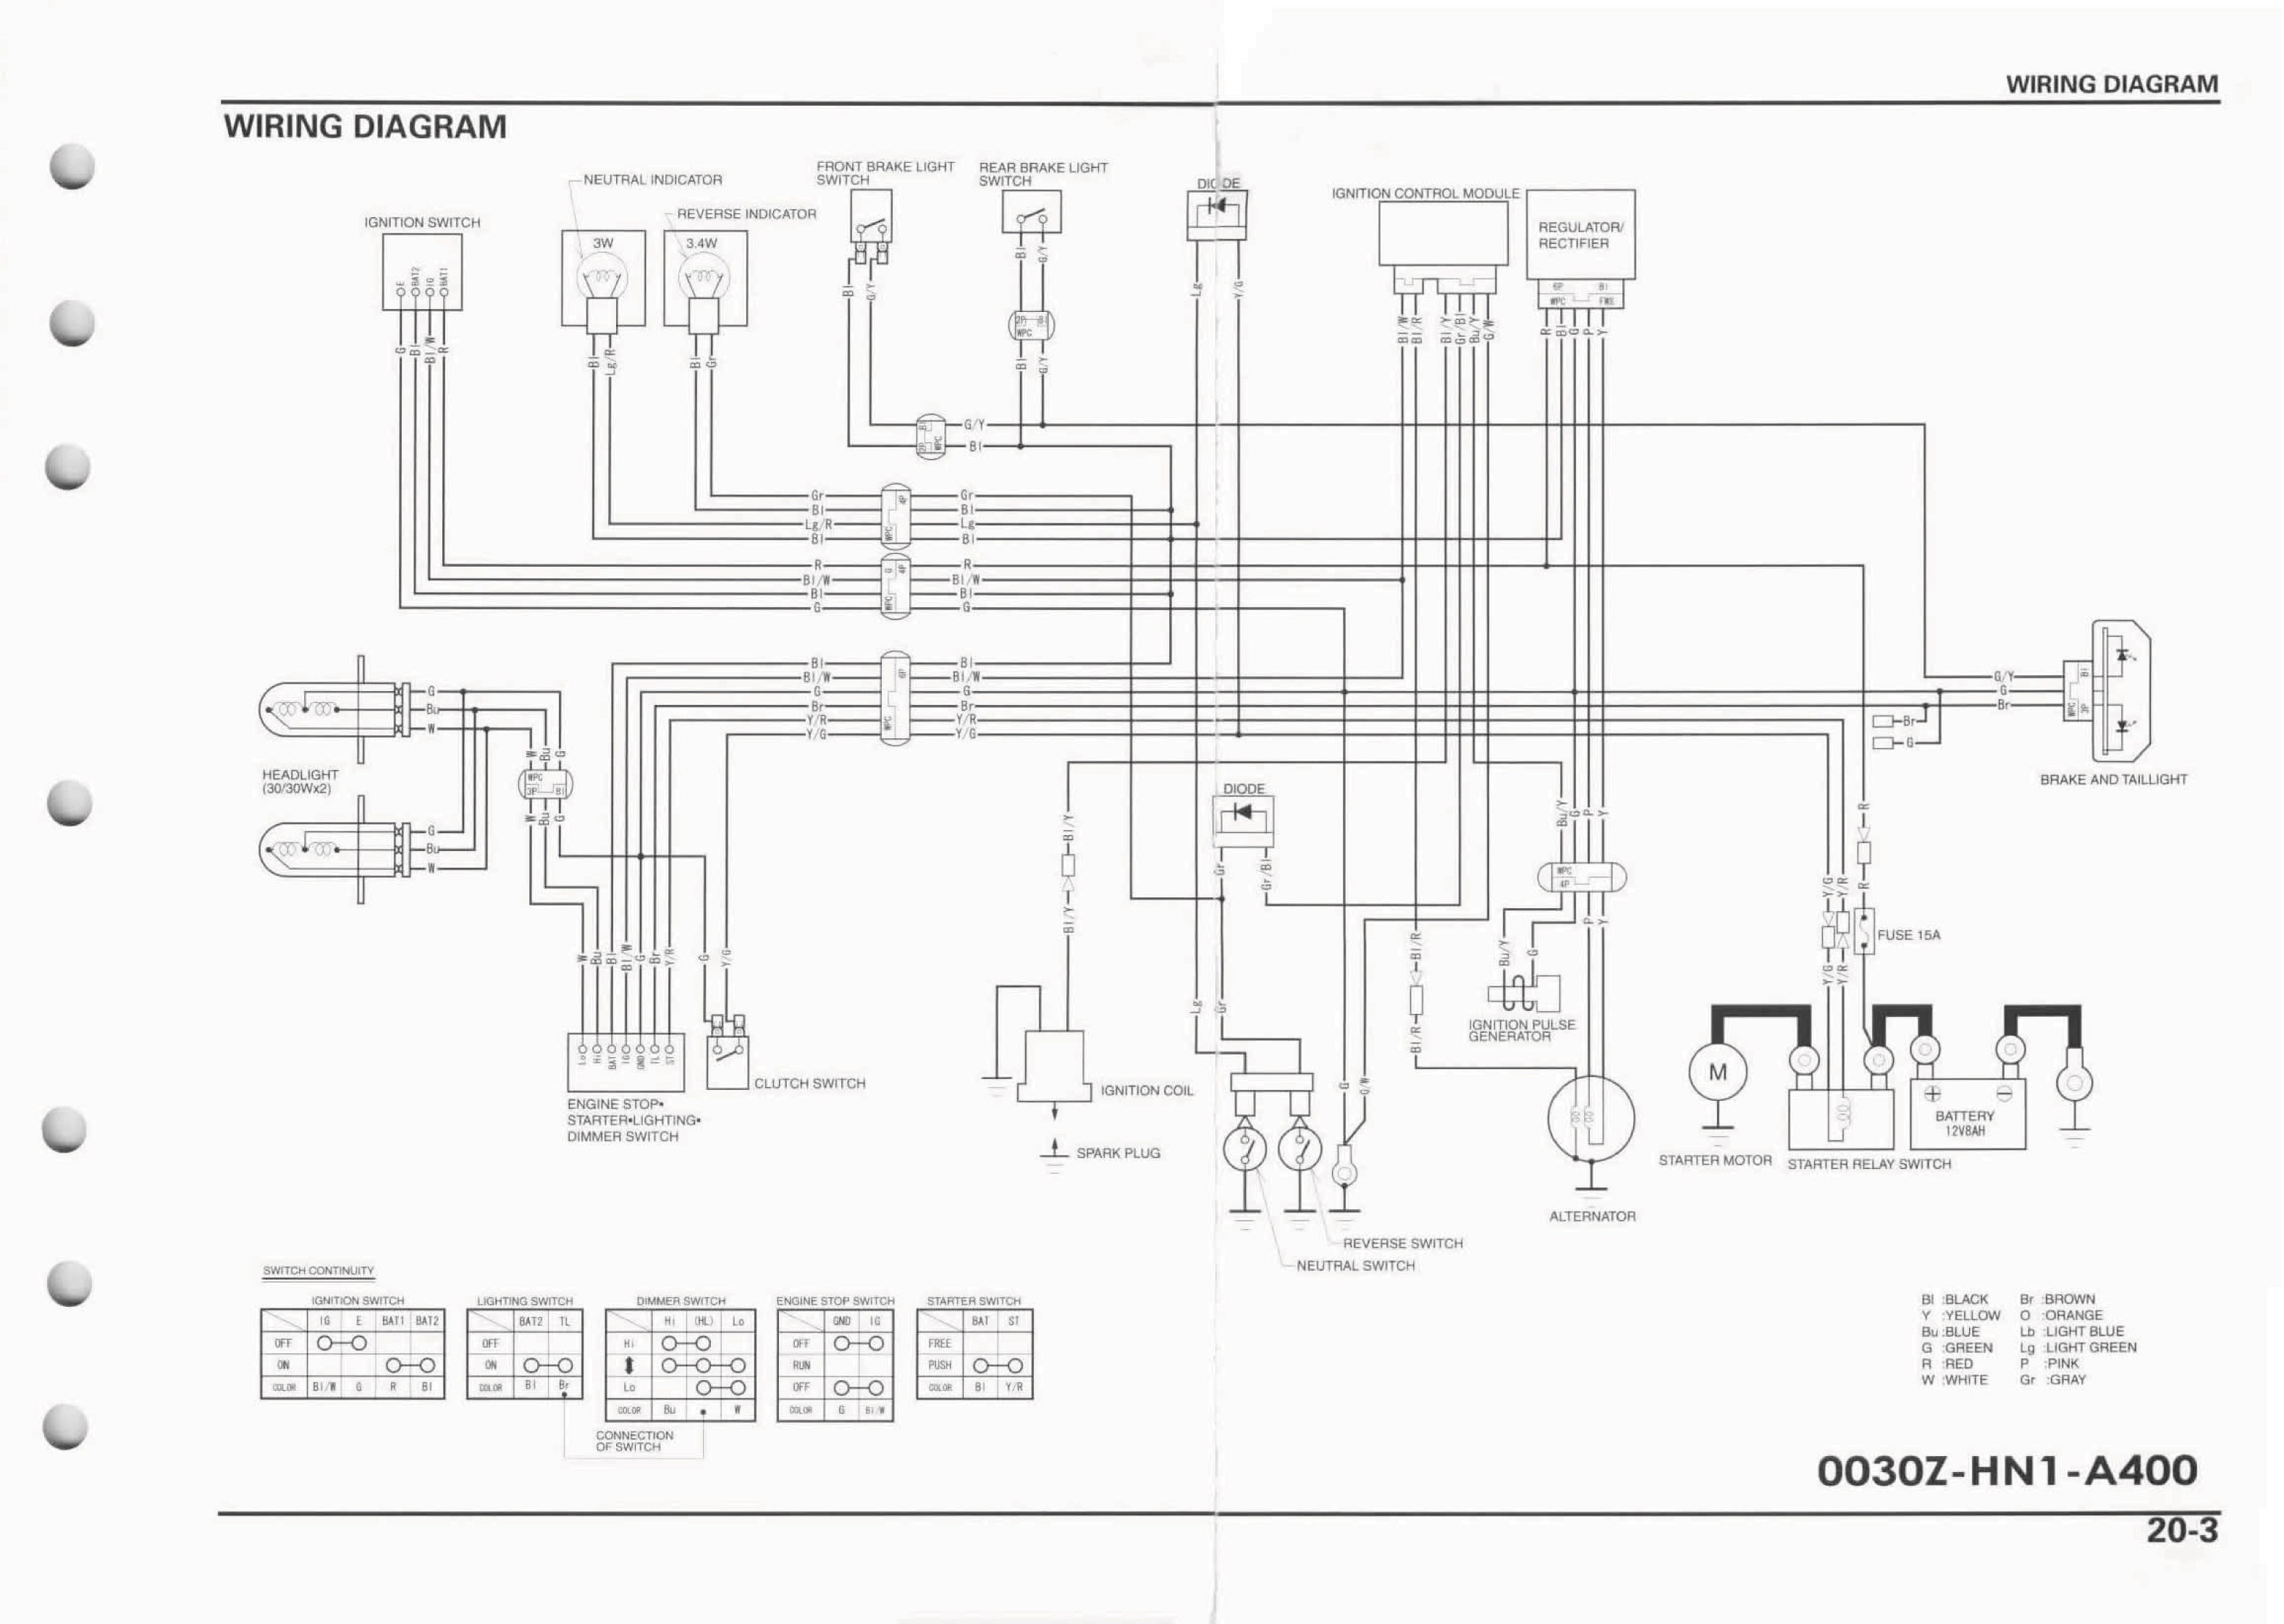 honda trx 250 wiring diagram wiring diagram database 2007 honda 450 trx wiring-diagram